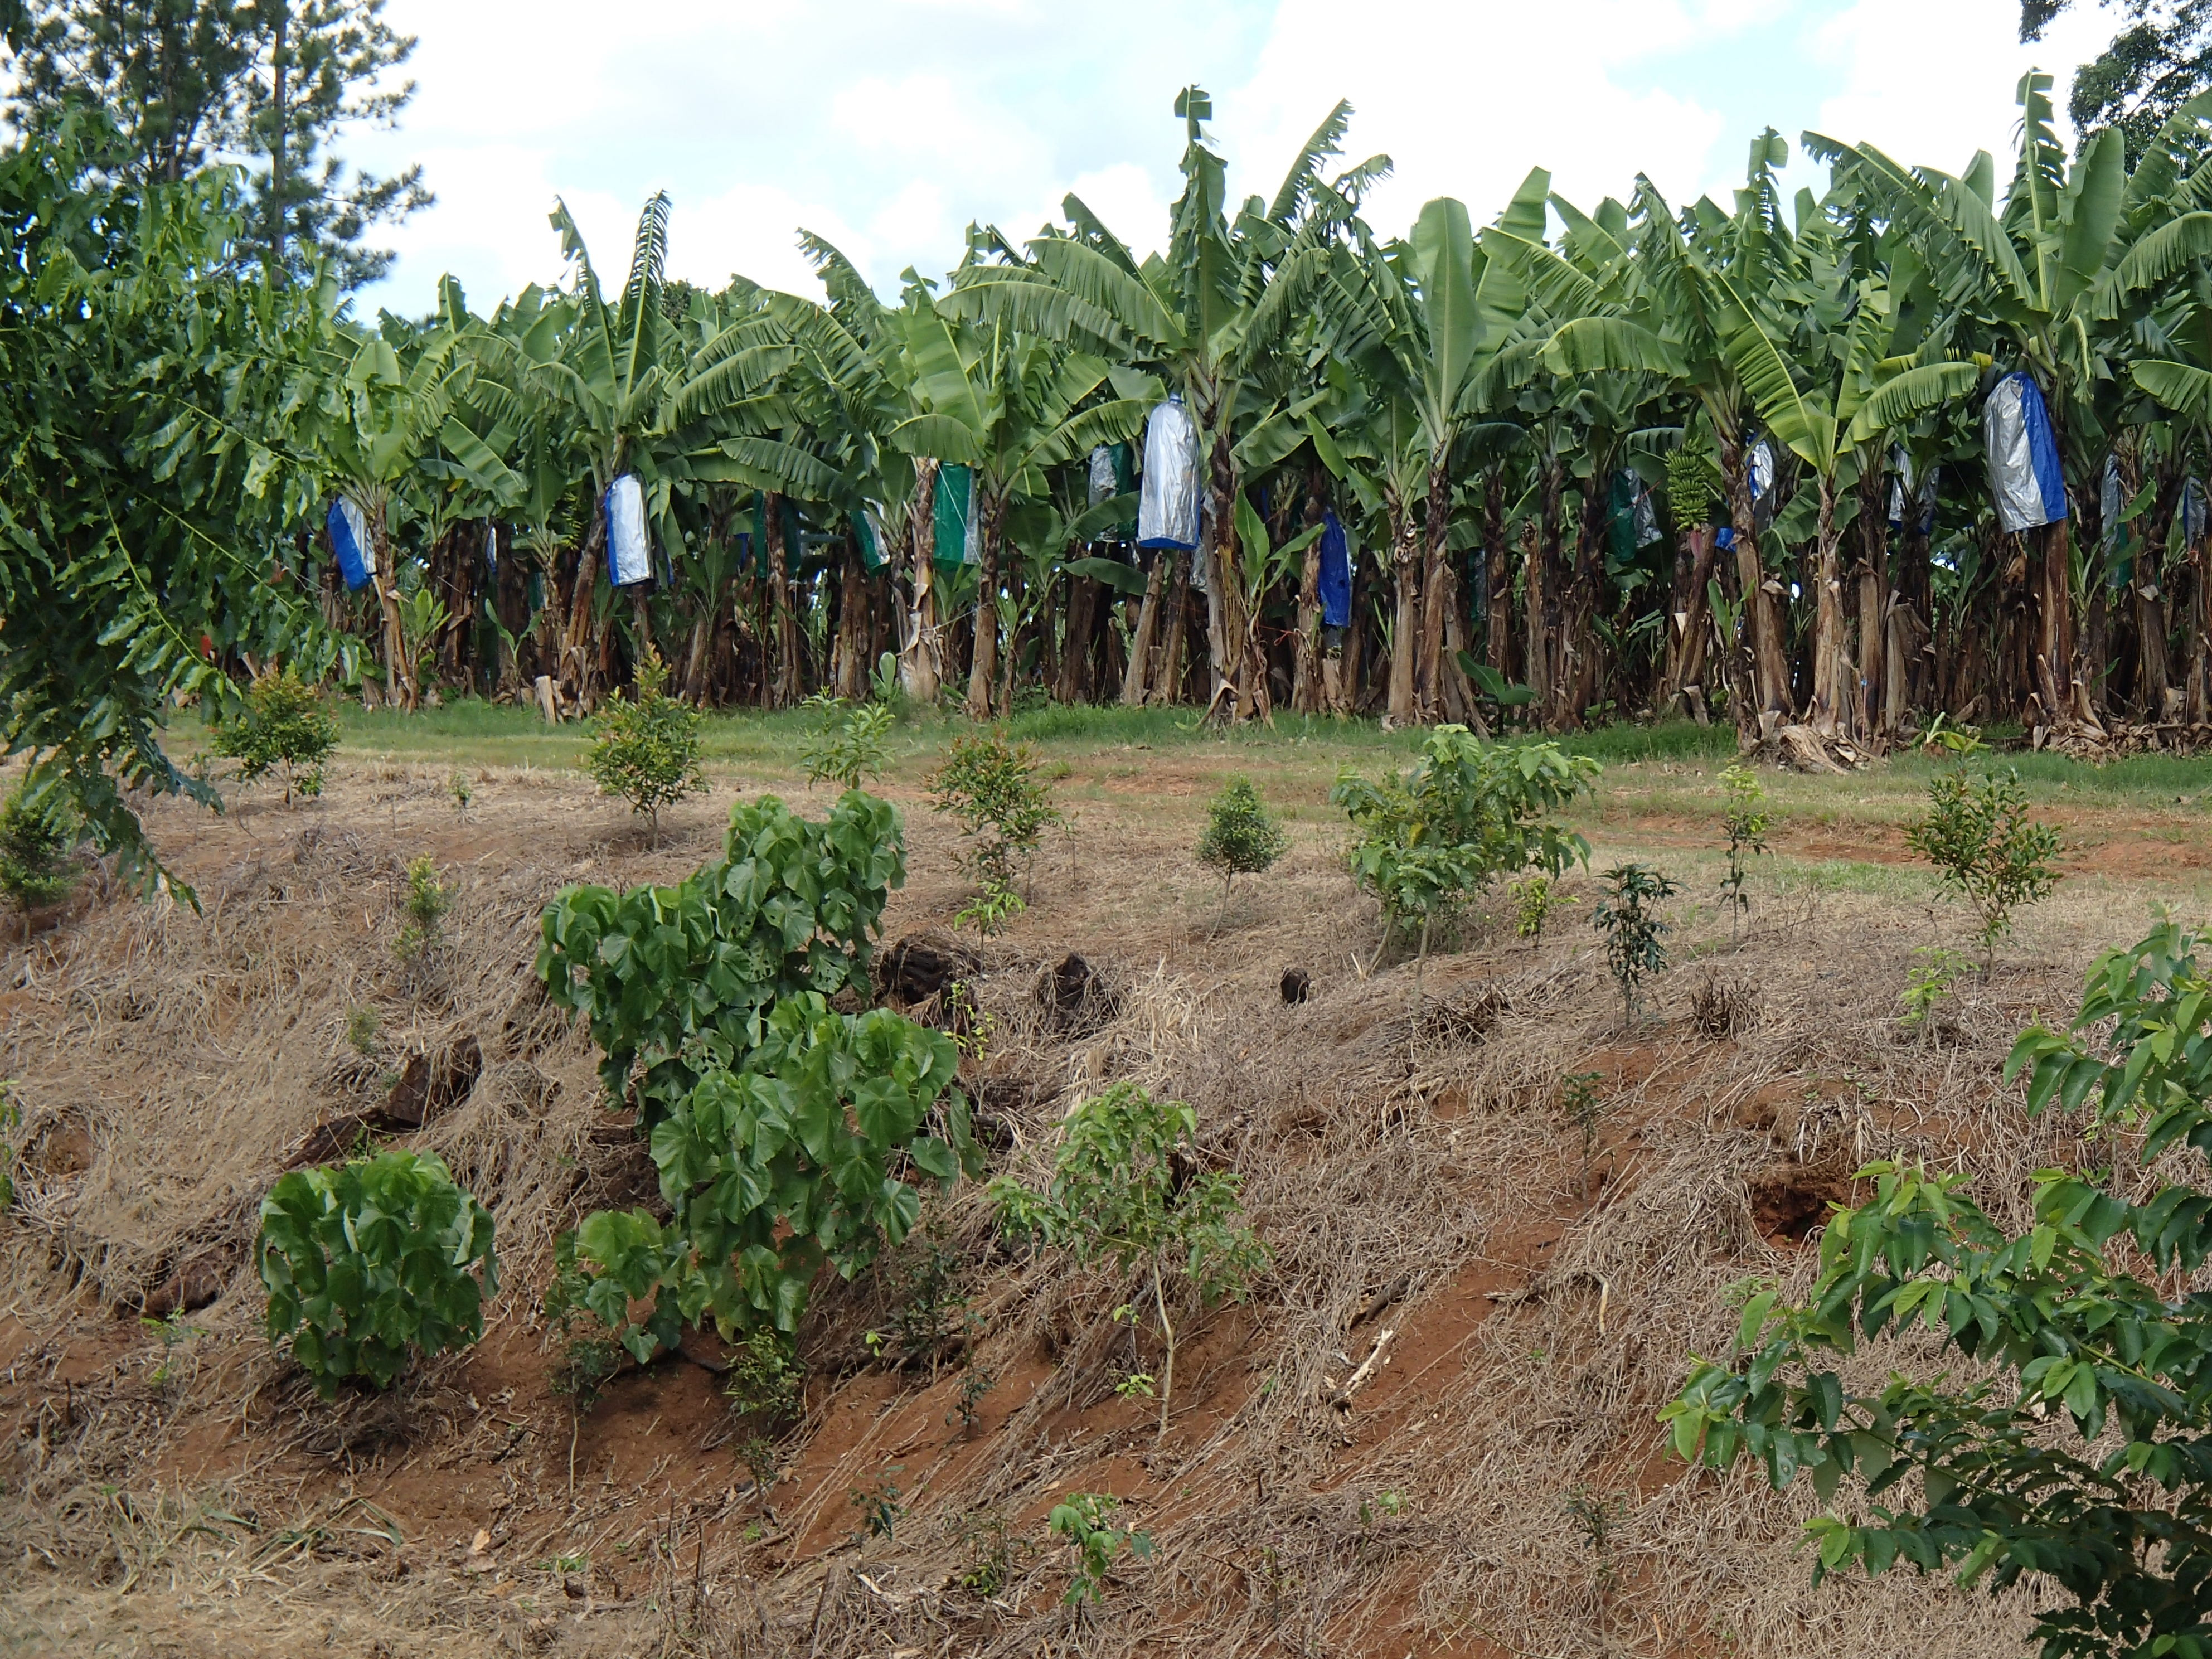 Bank revegetation on a banana farm. Photo by Queensland Government.